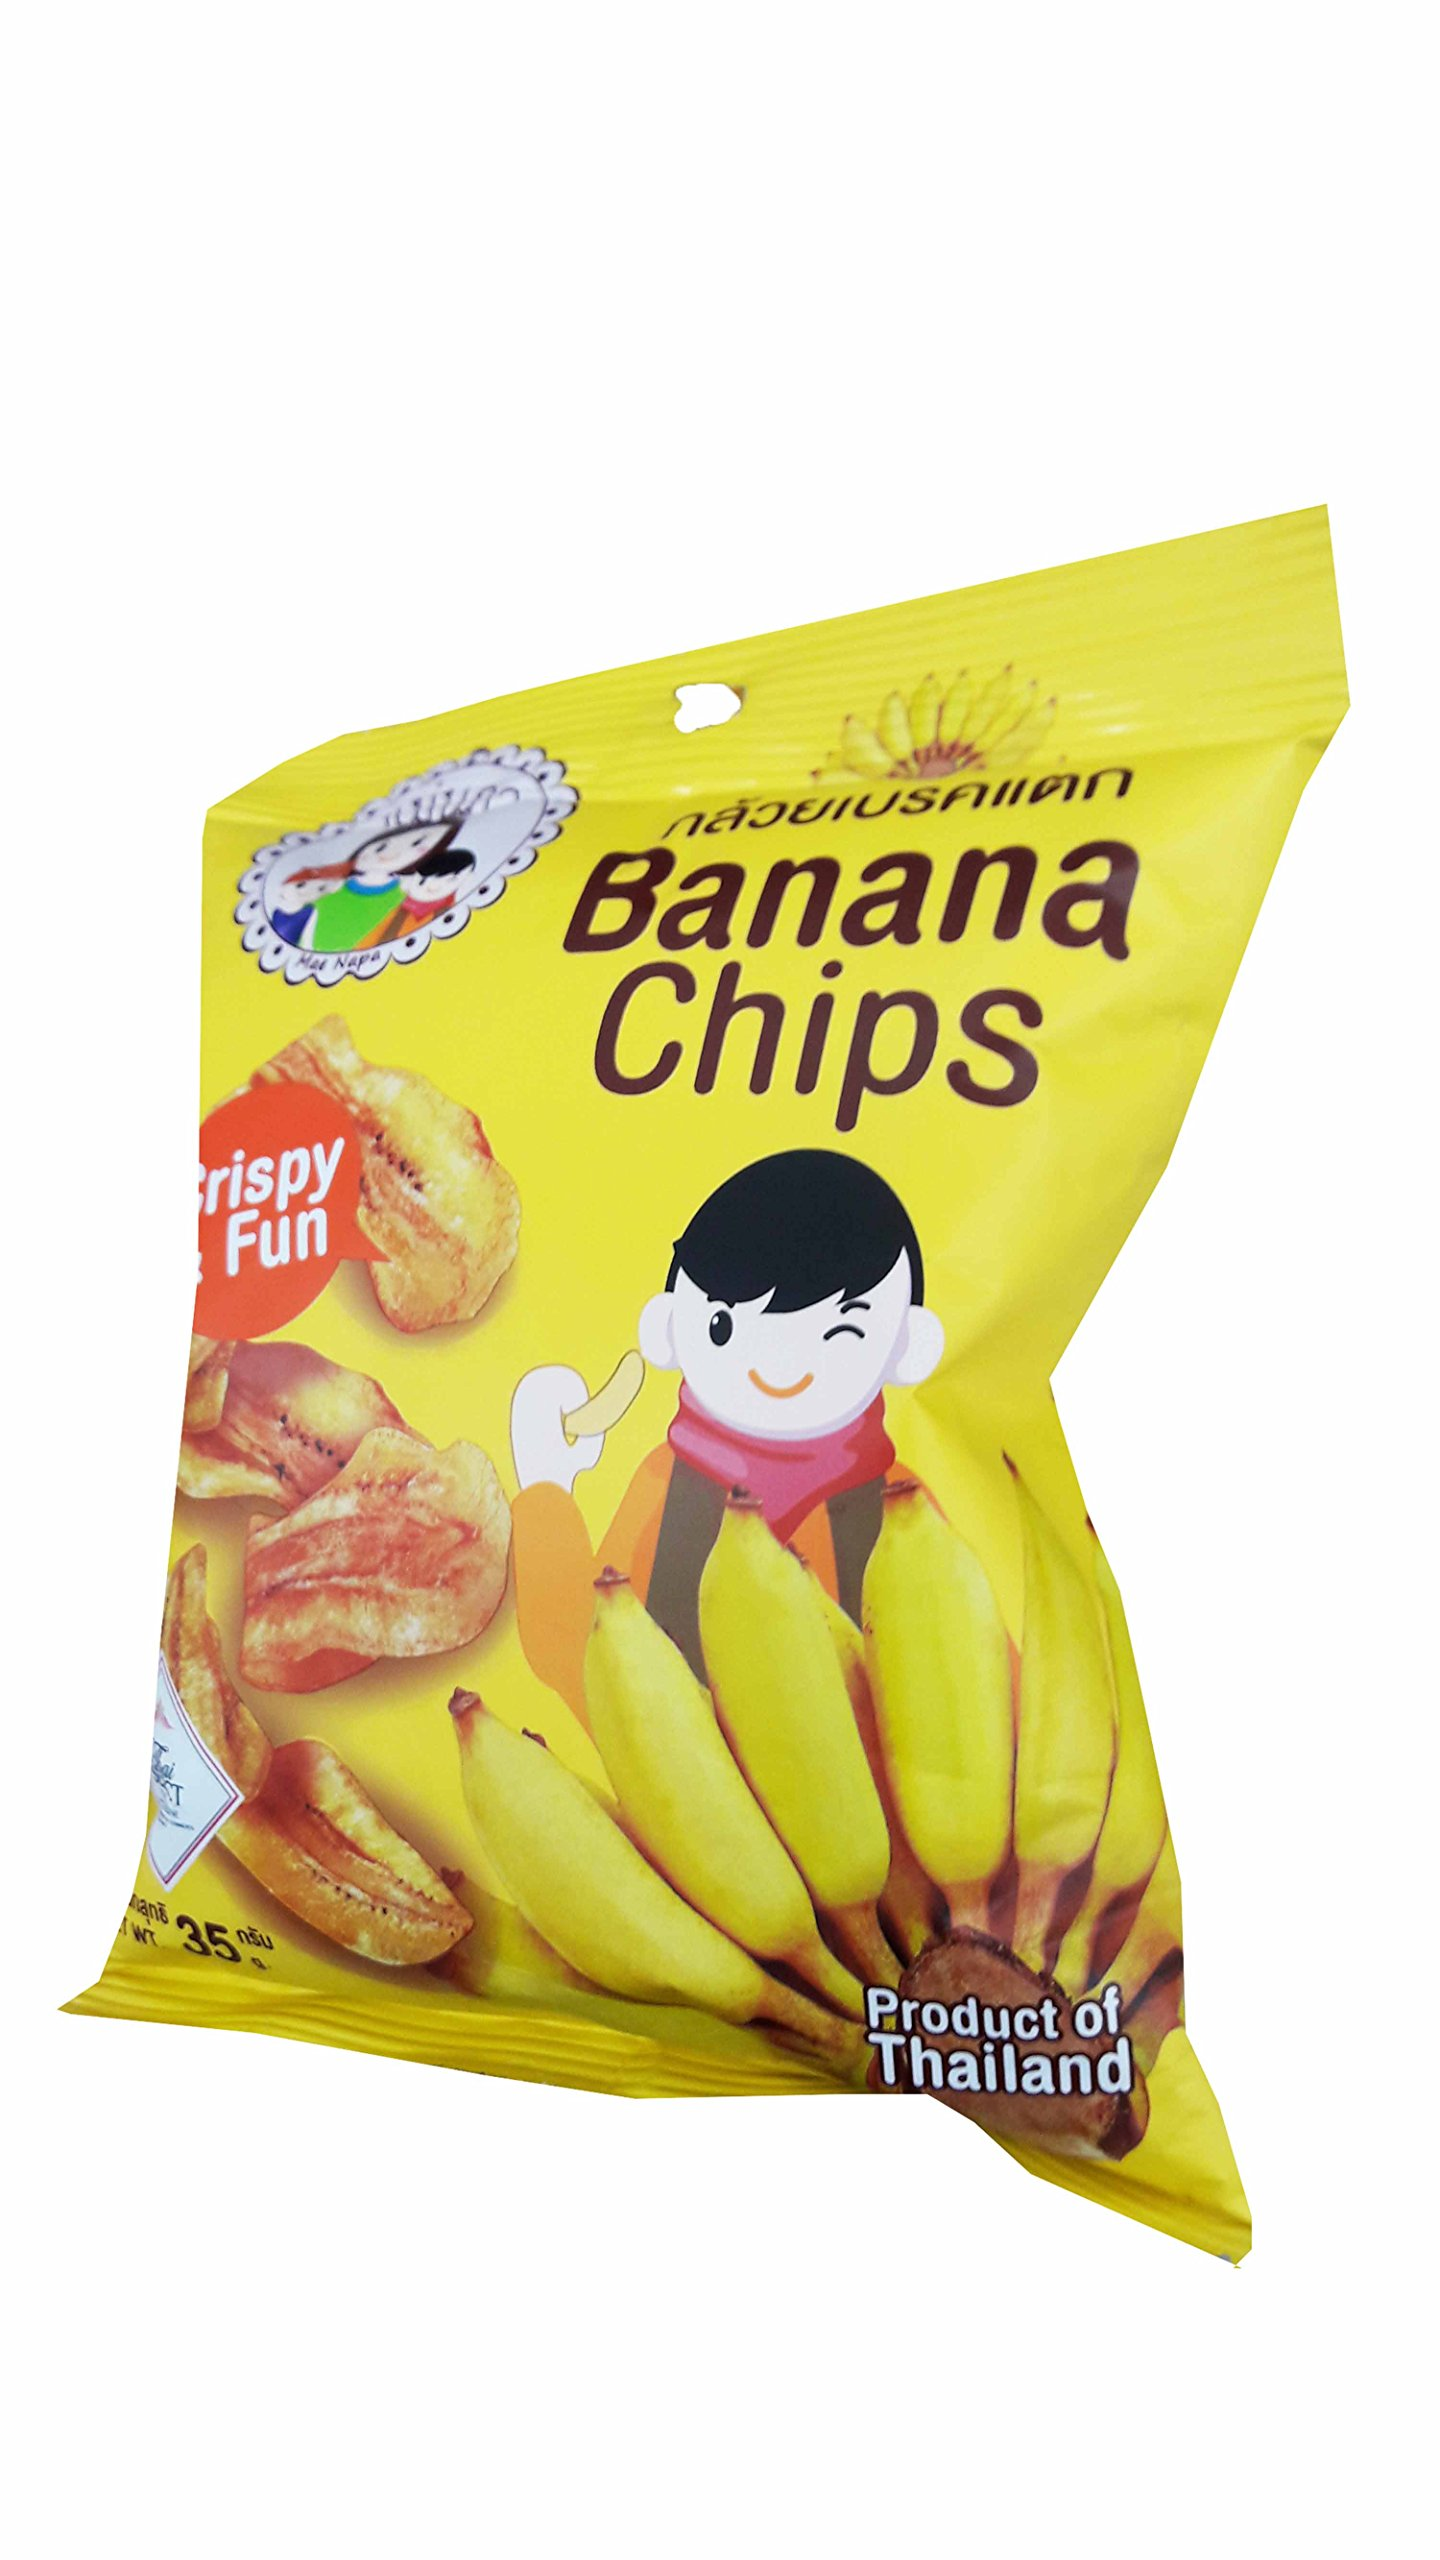 3 packs of Banana Chips, Crispy Banana by Mae Napa, Healthy and Delicious Snack. Premium quality snack from Thailand.(35 g/pack)